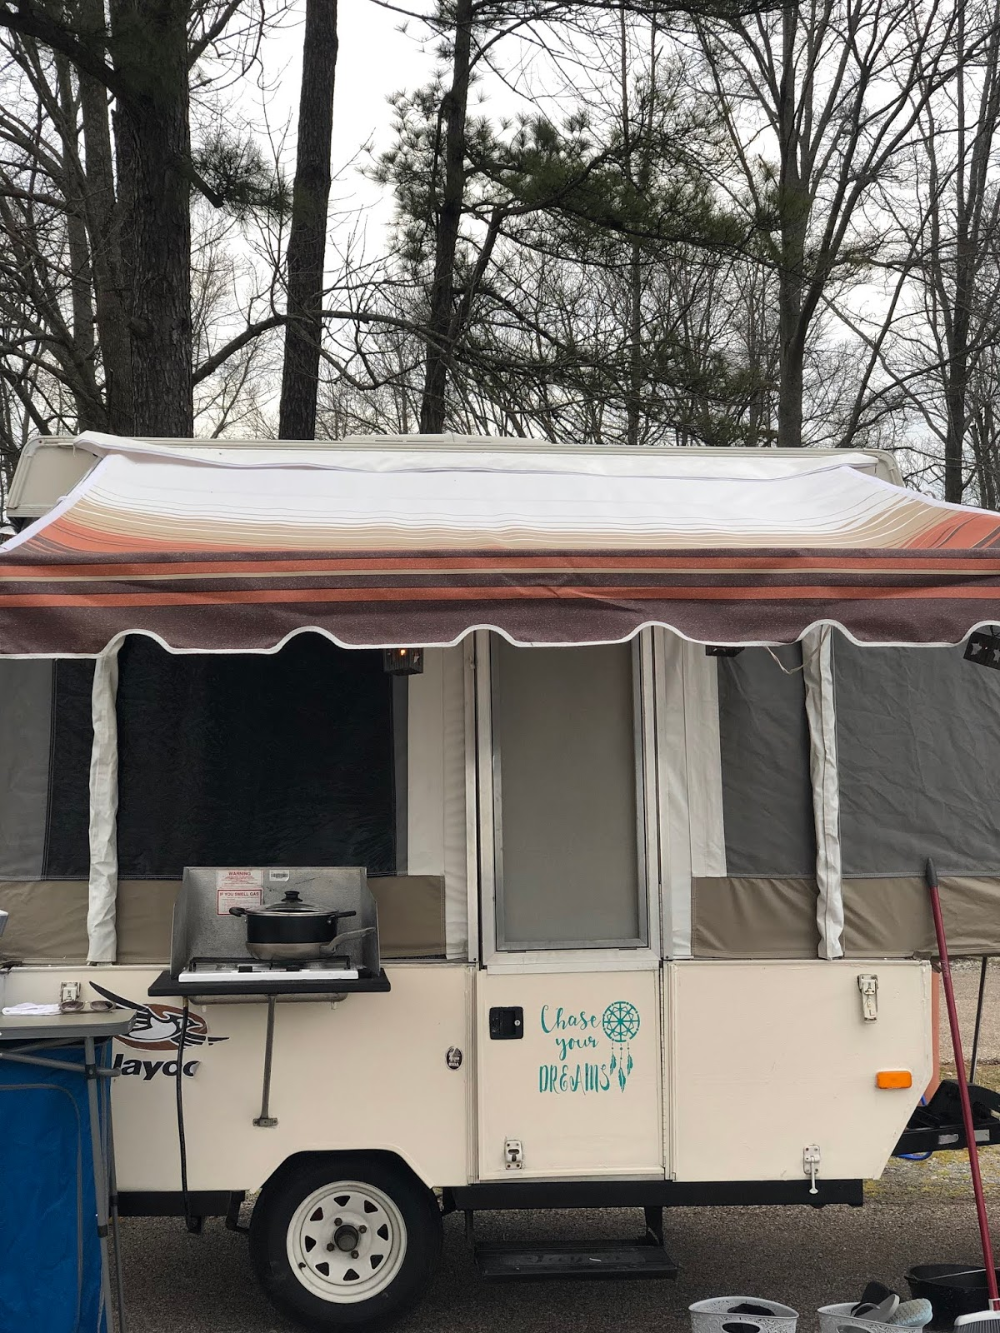 Replace Your Bag Awning On Your Pop Up Camper Pop Up Tent Trailer Camper Awnings Pop Up Camper